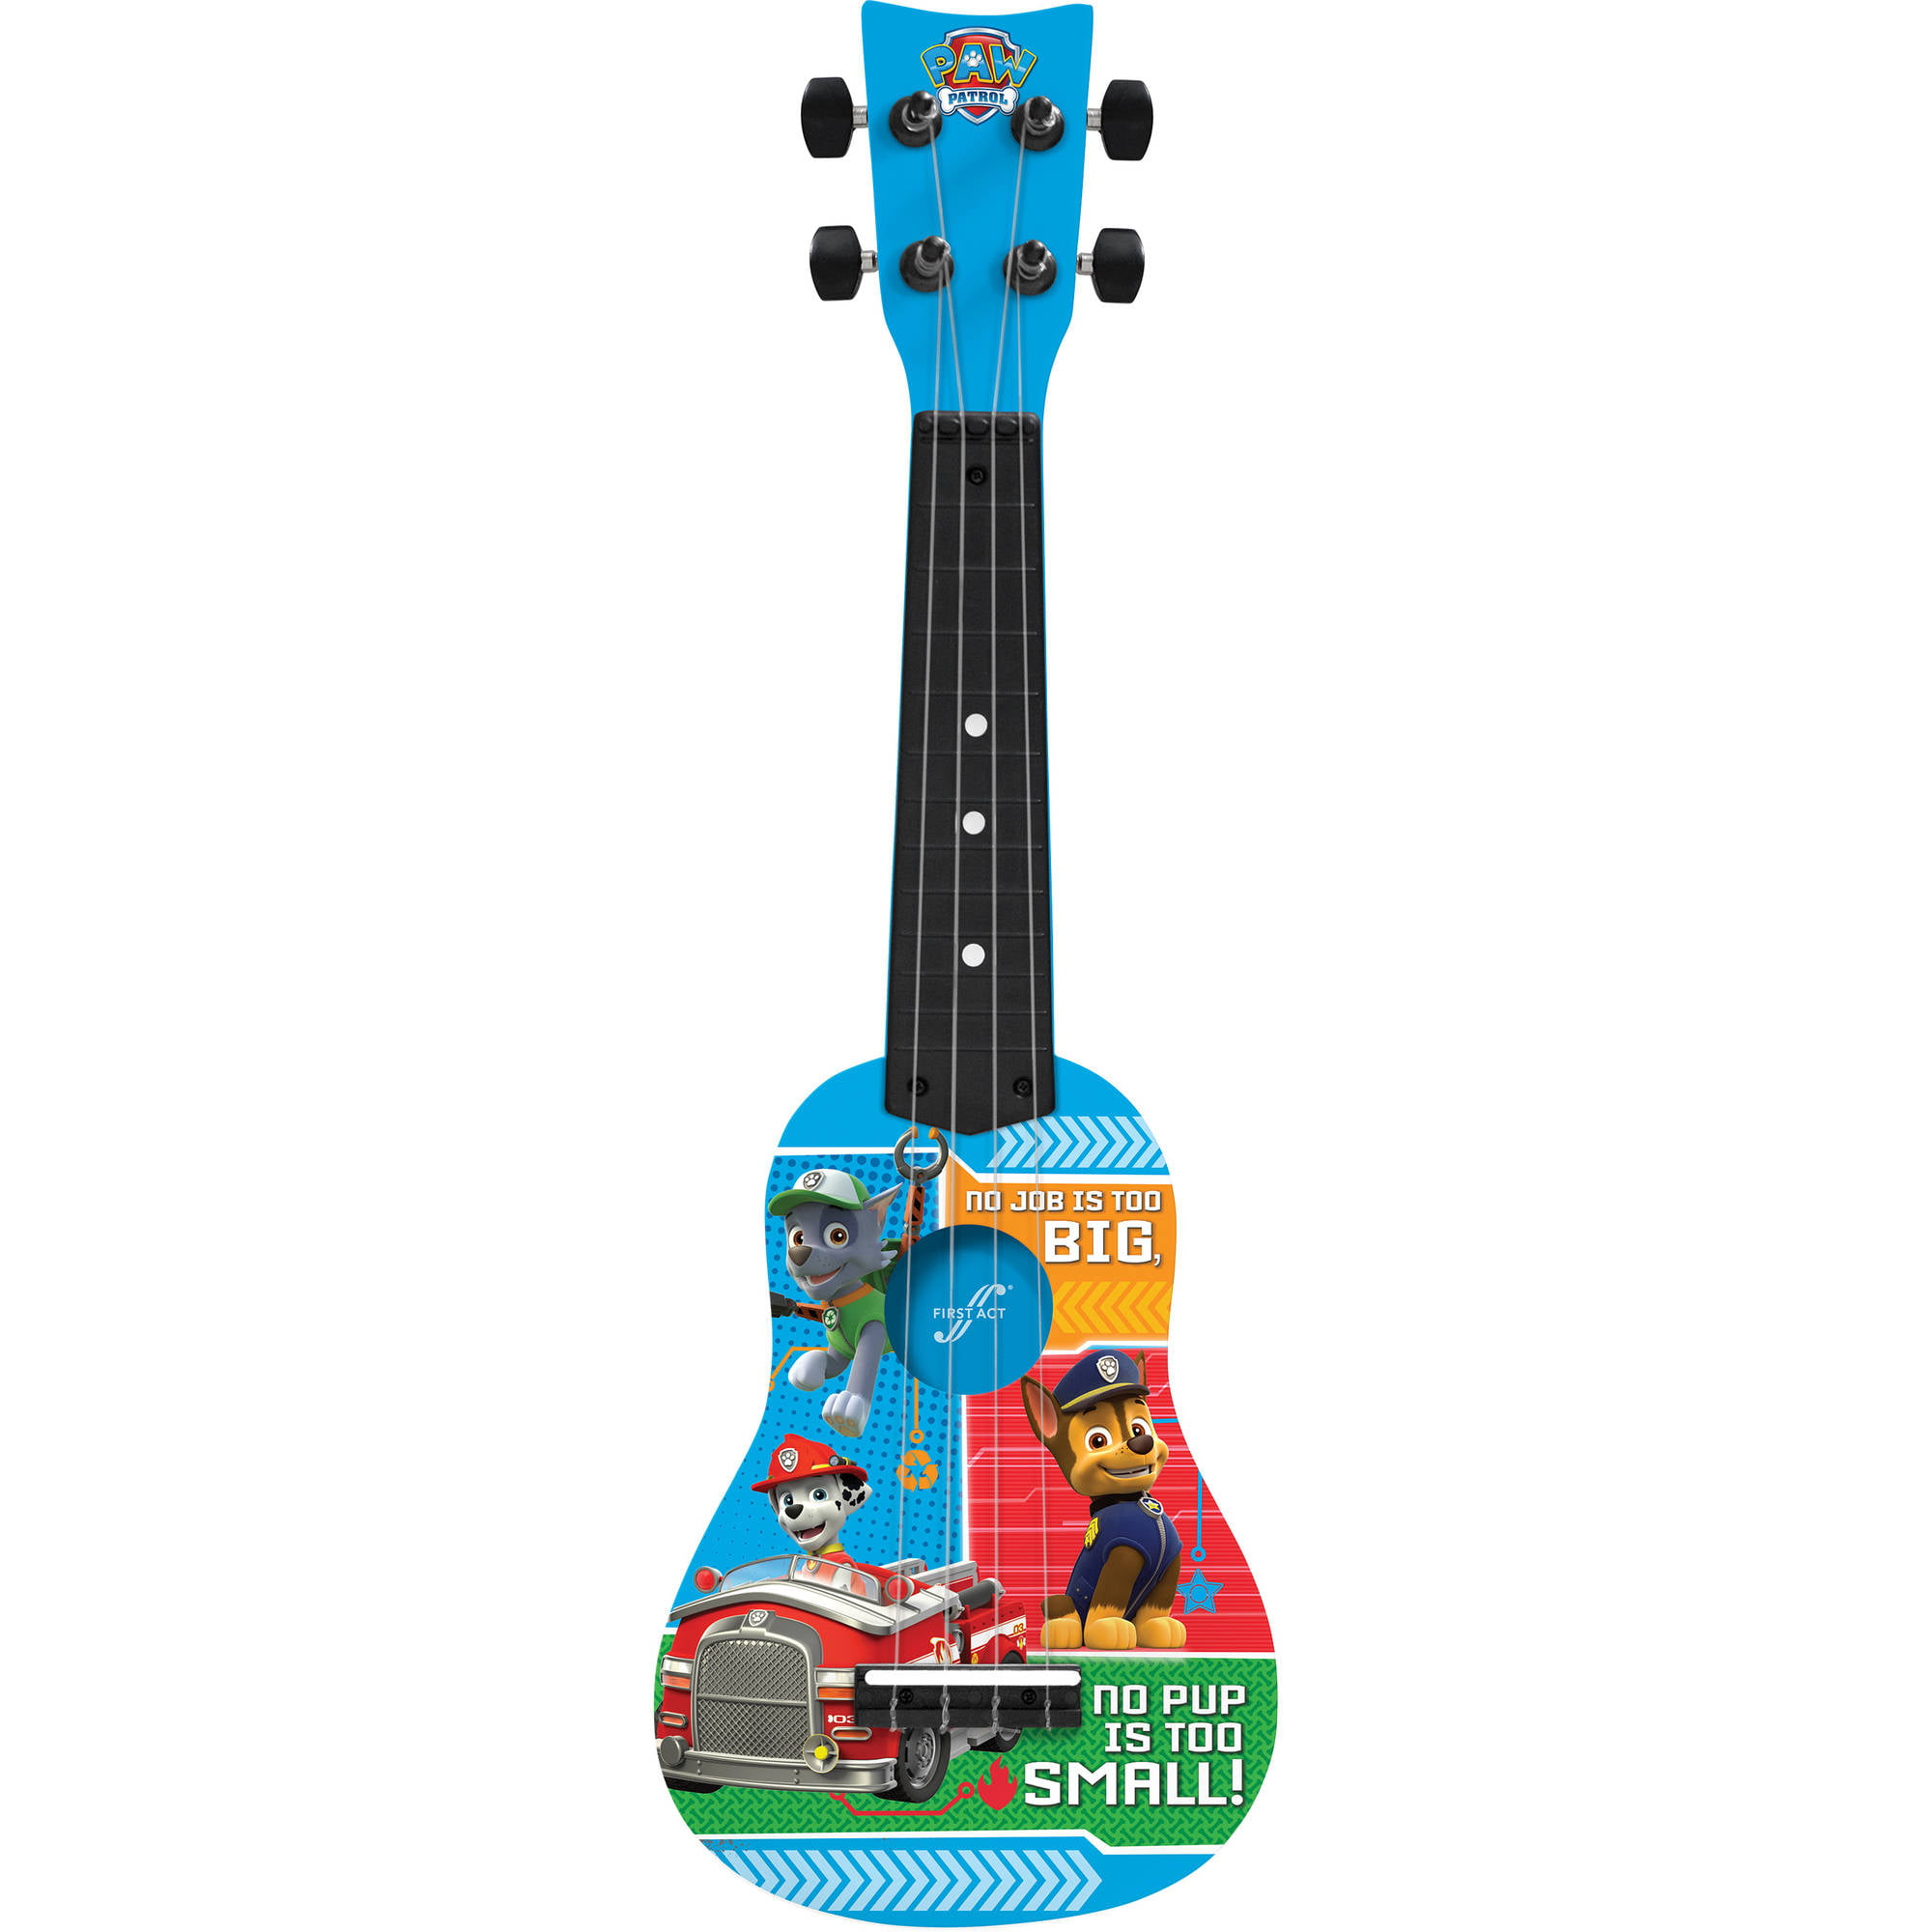 First Act Nickelodeon Paw Patrol Mini Guitar PP286, Blue by FIRST ACT INC.